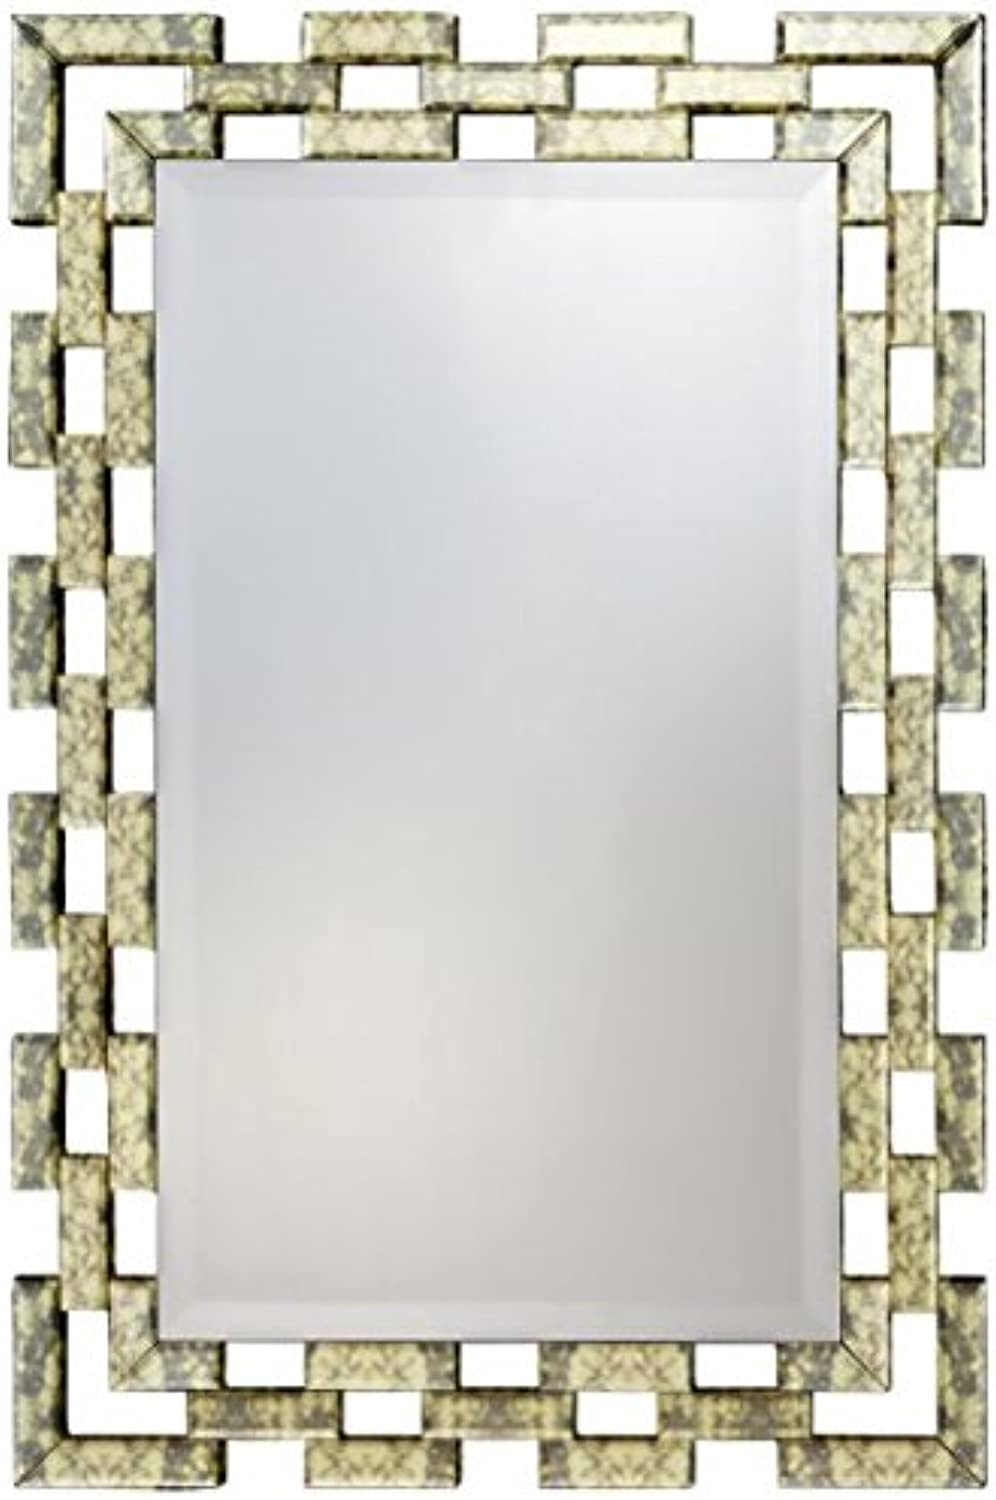 Sydney Mirror, Square Decorative Wall Mirror, Antique gold, 4 D-Ring Hangers, Hanging Horizontally Or greenically, MDF, Beveled, 36 inch X 24 inch, Modern Décor for Bedroom, Living Room Or Bathroom.